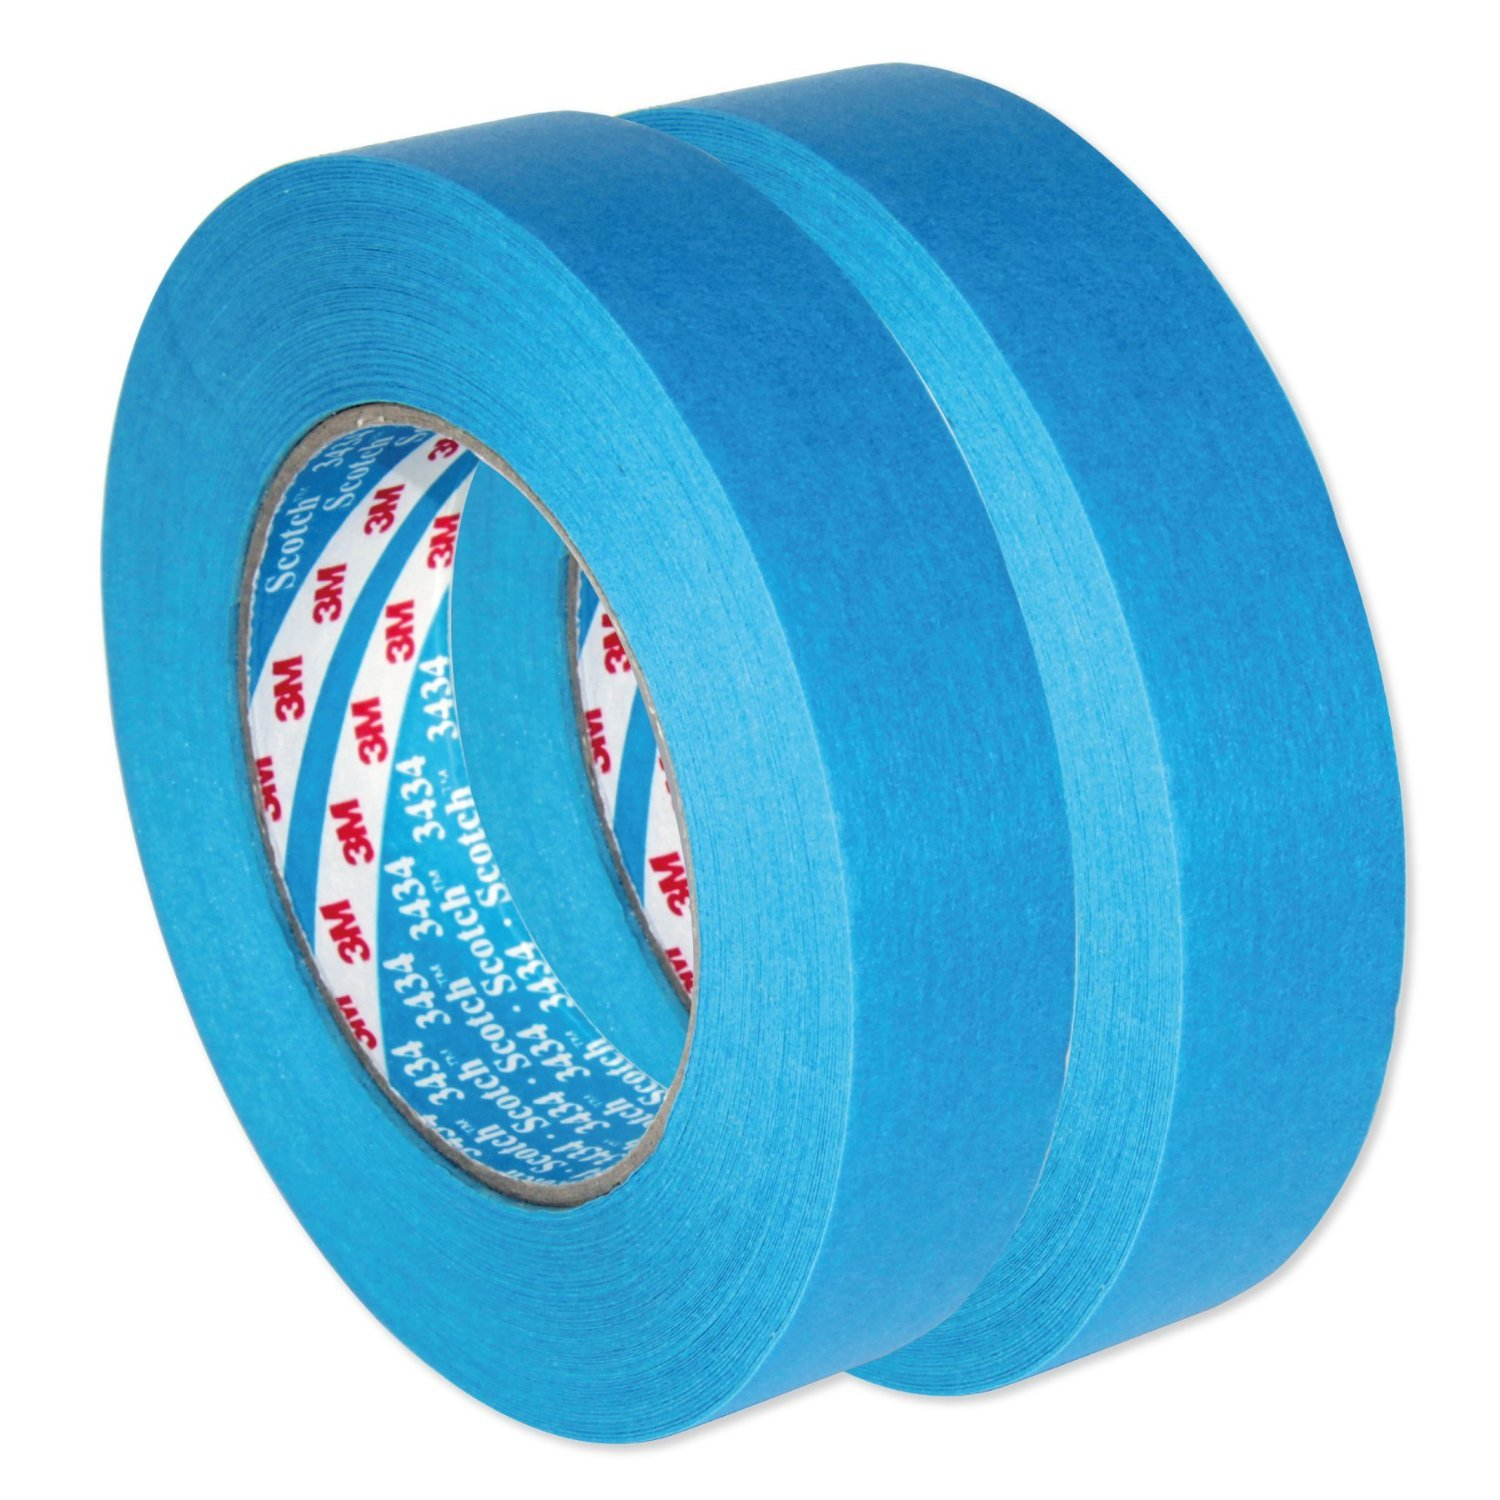 3M Scotch AutoBright Blaues Band Wasserdicht, Automotive Kreppband 3434 110°C 25 mm x 50m x 2 von 3M